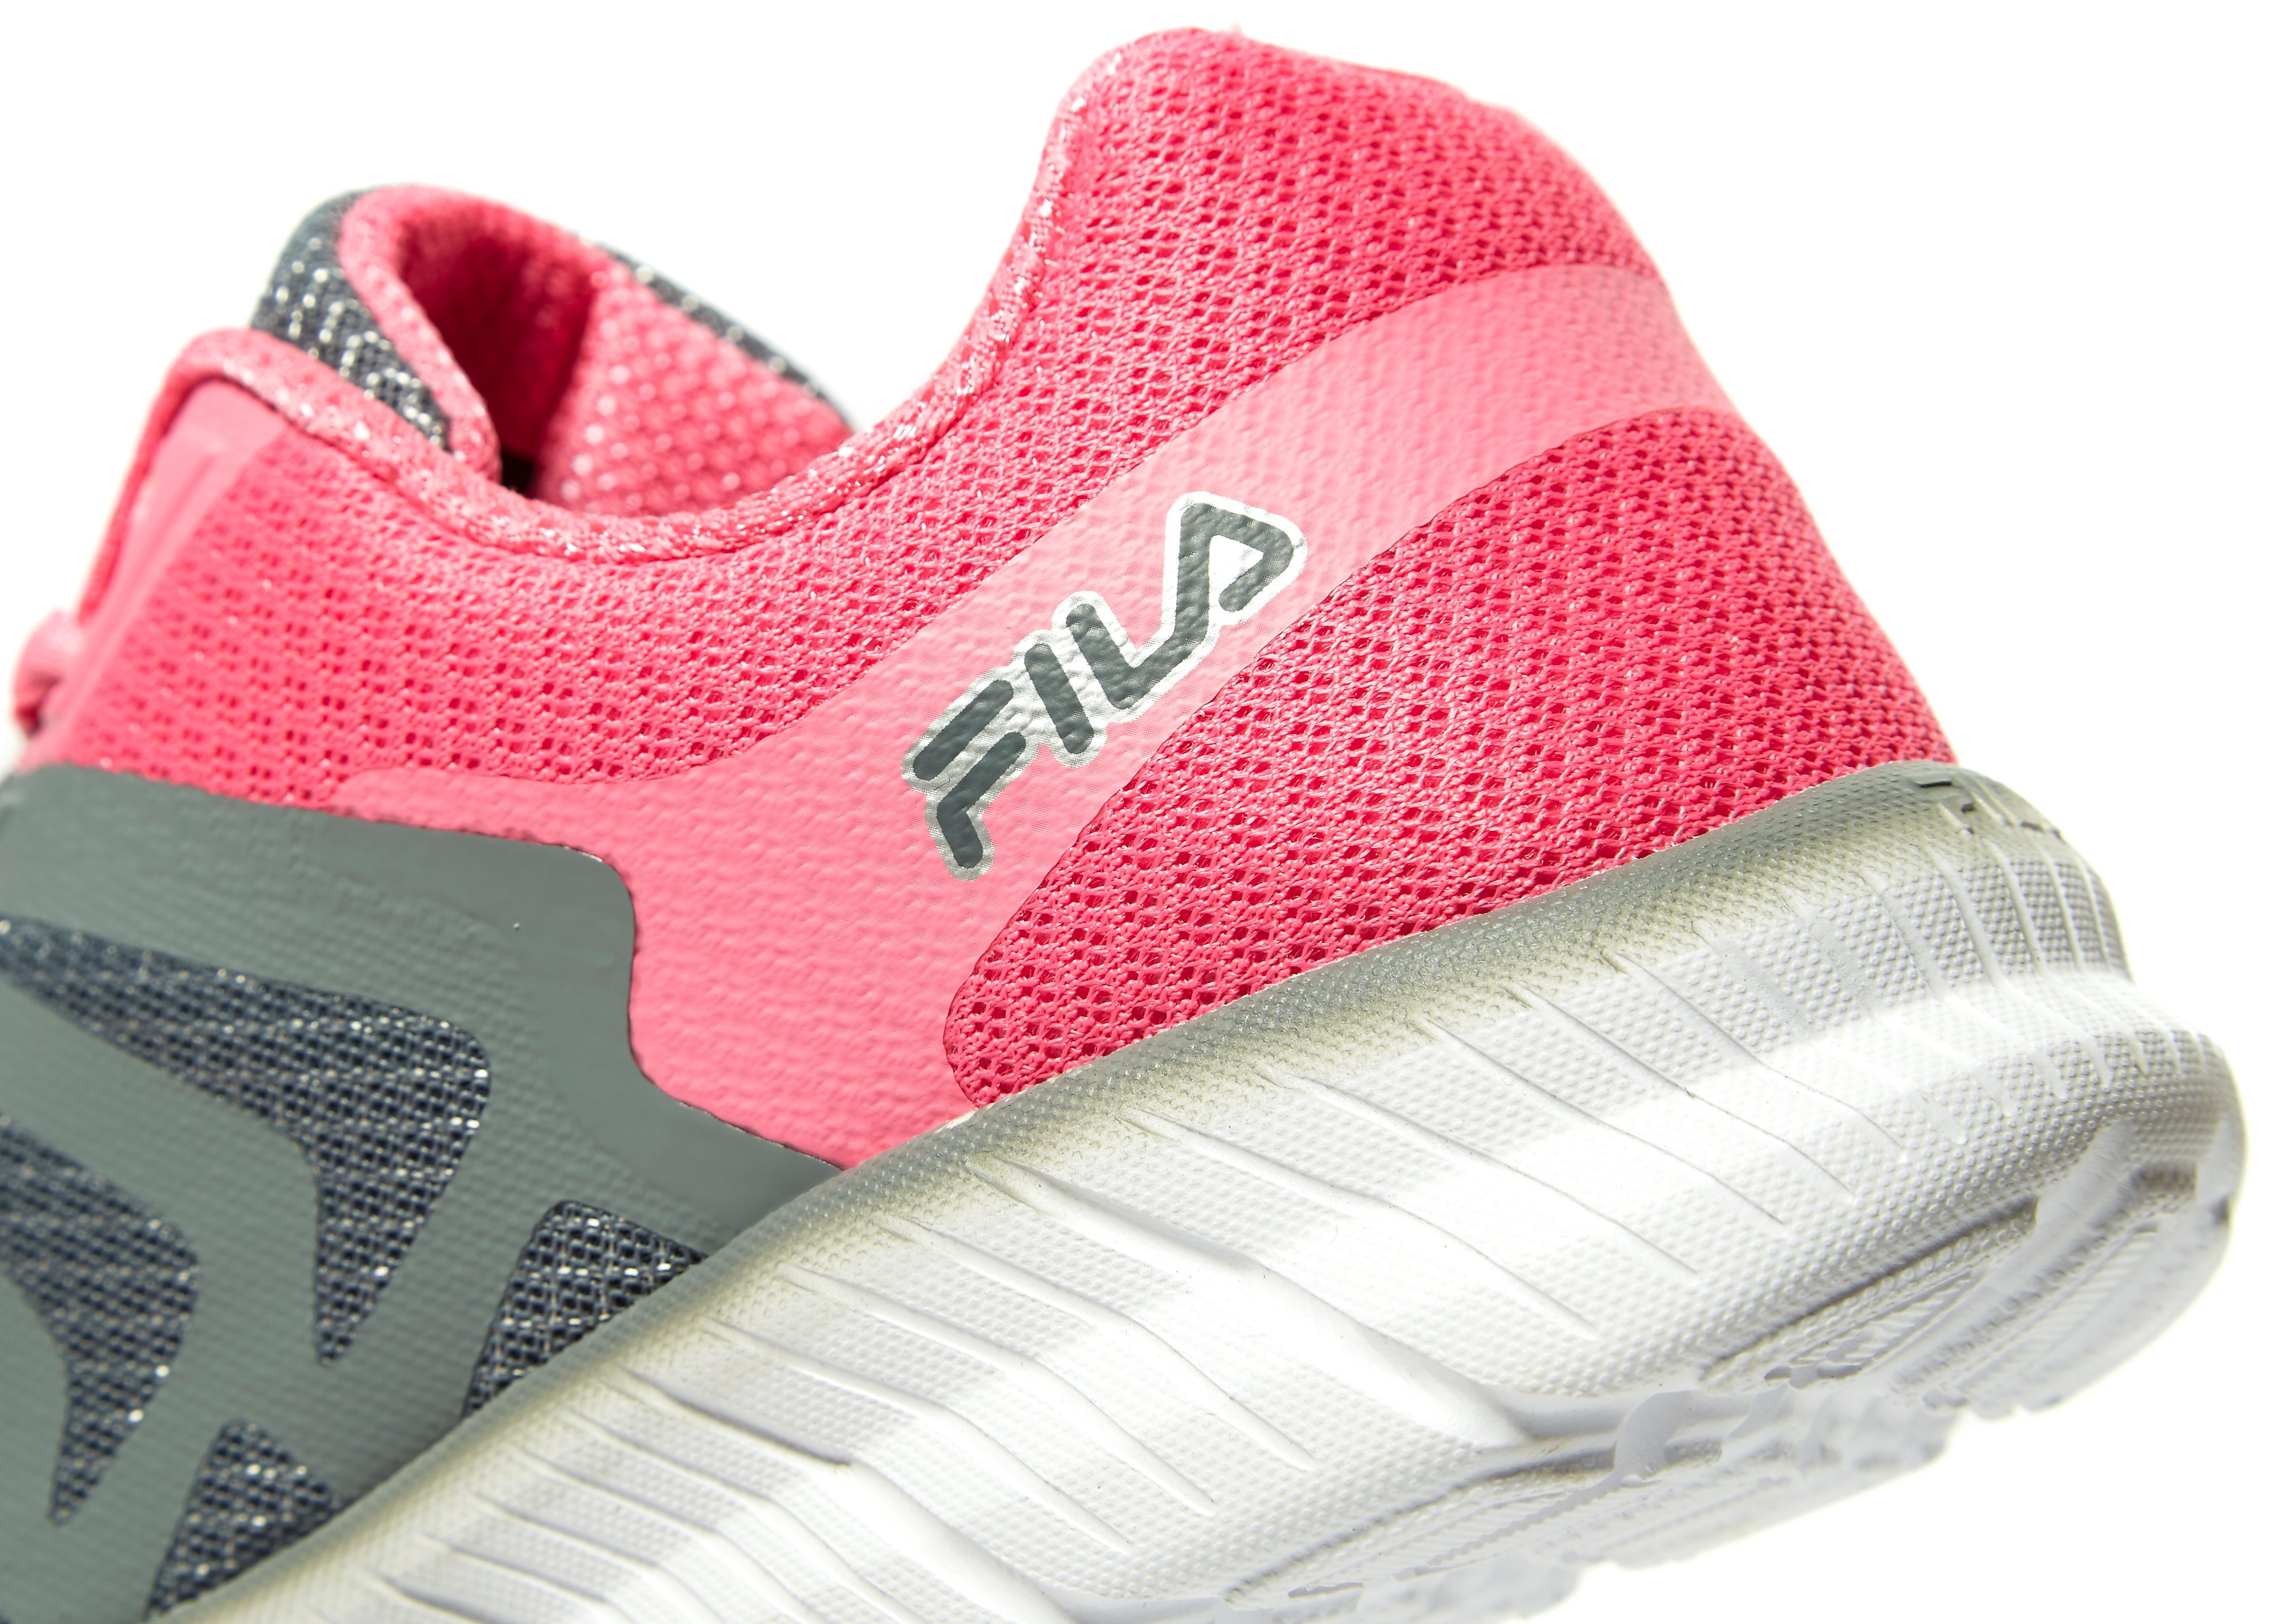 Fila Faction 2 Women's